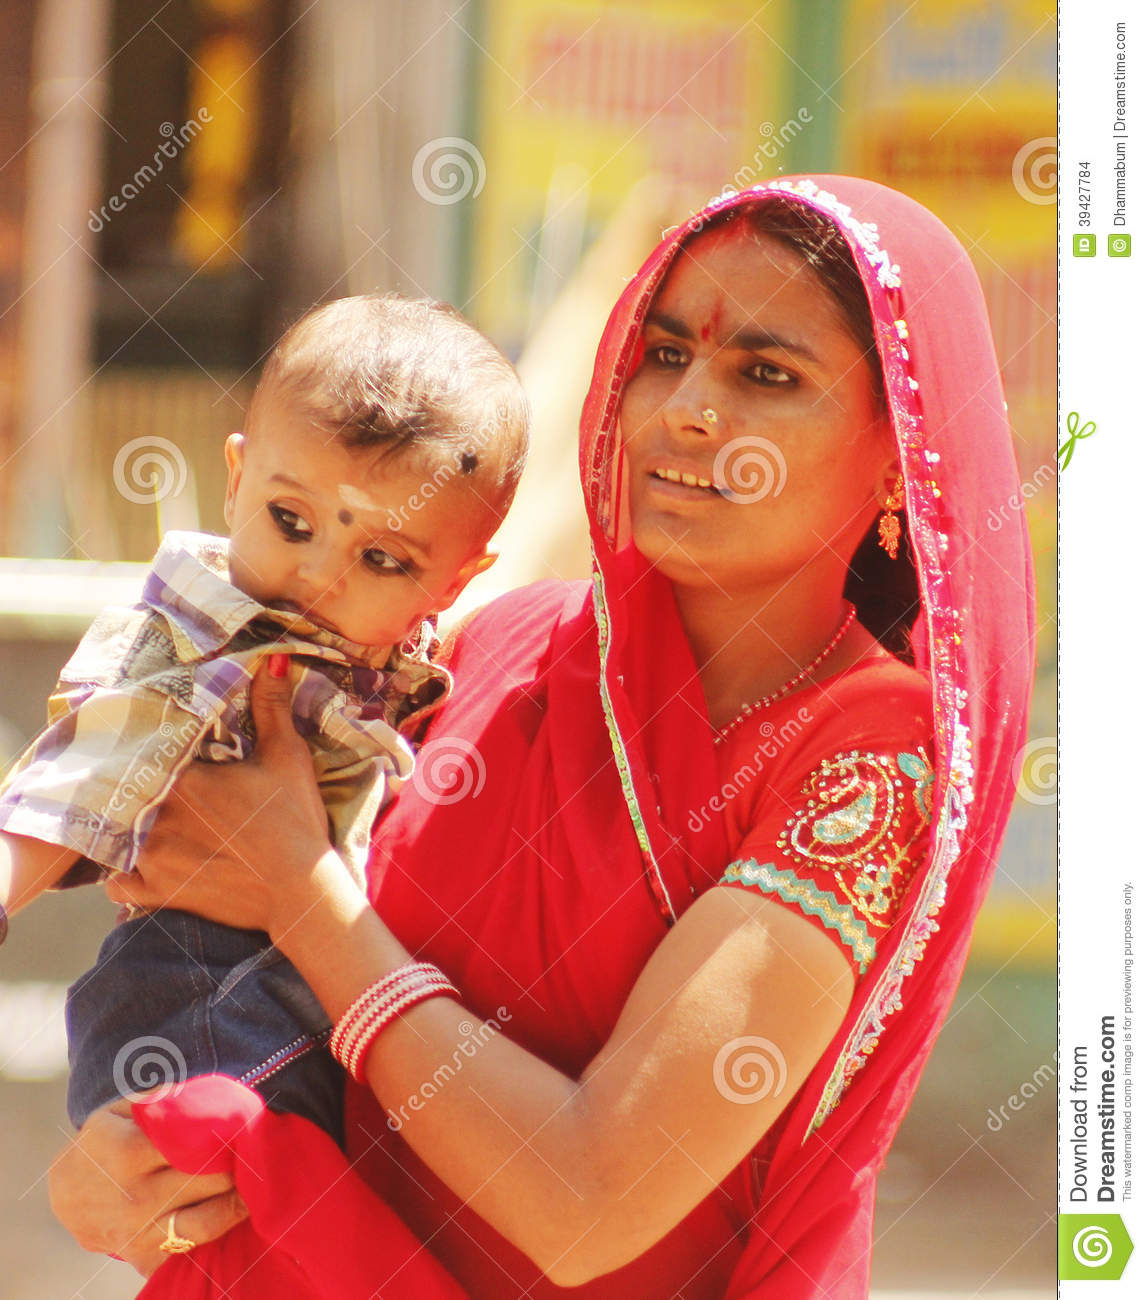 Indian Mother With Her Child Editorial Stock Image - Image ...